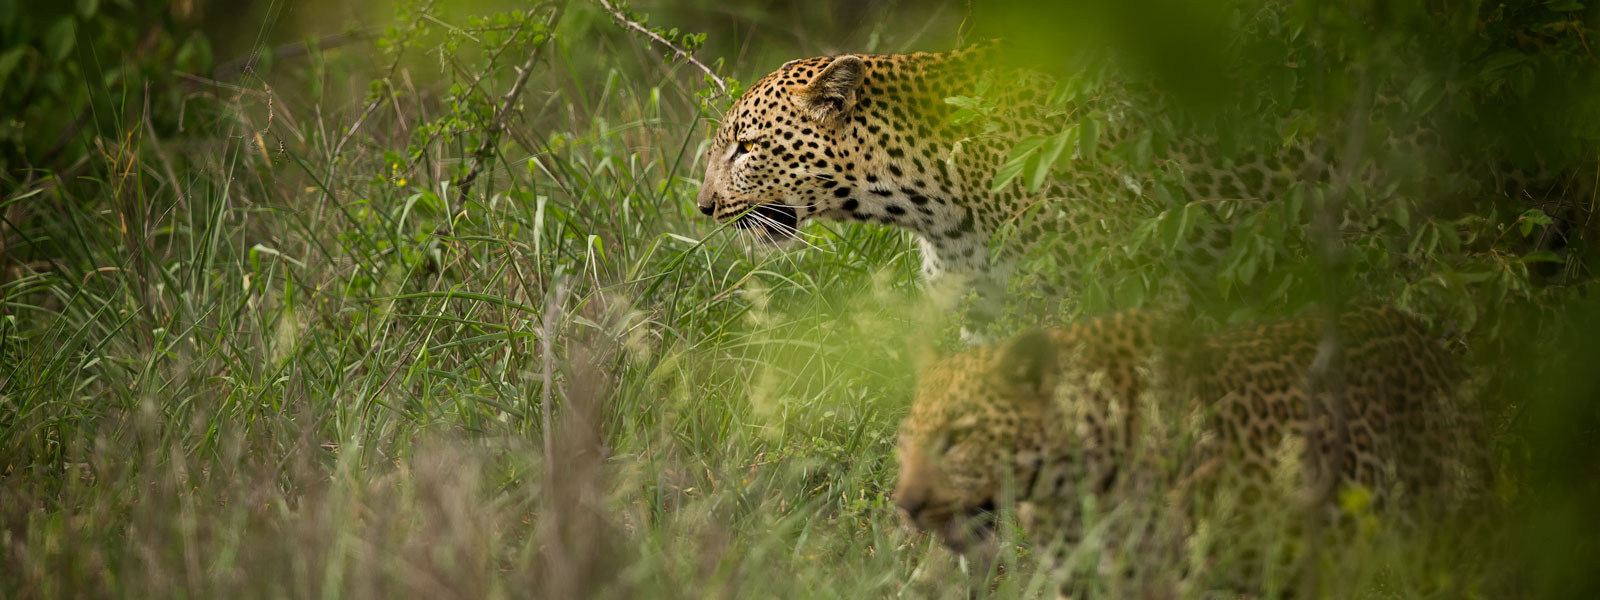 Leopard-and-Cub-1600x600-SFW